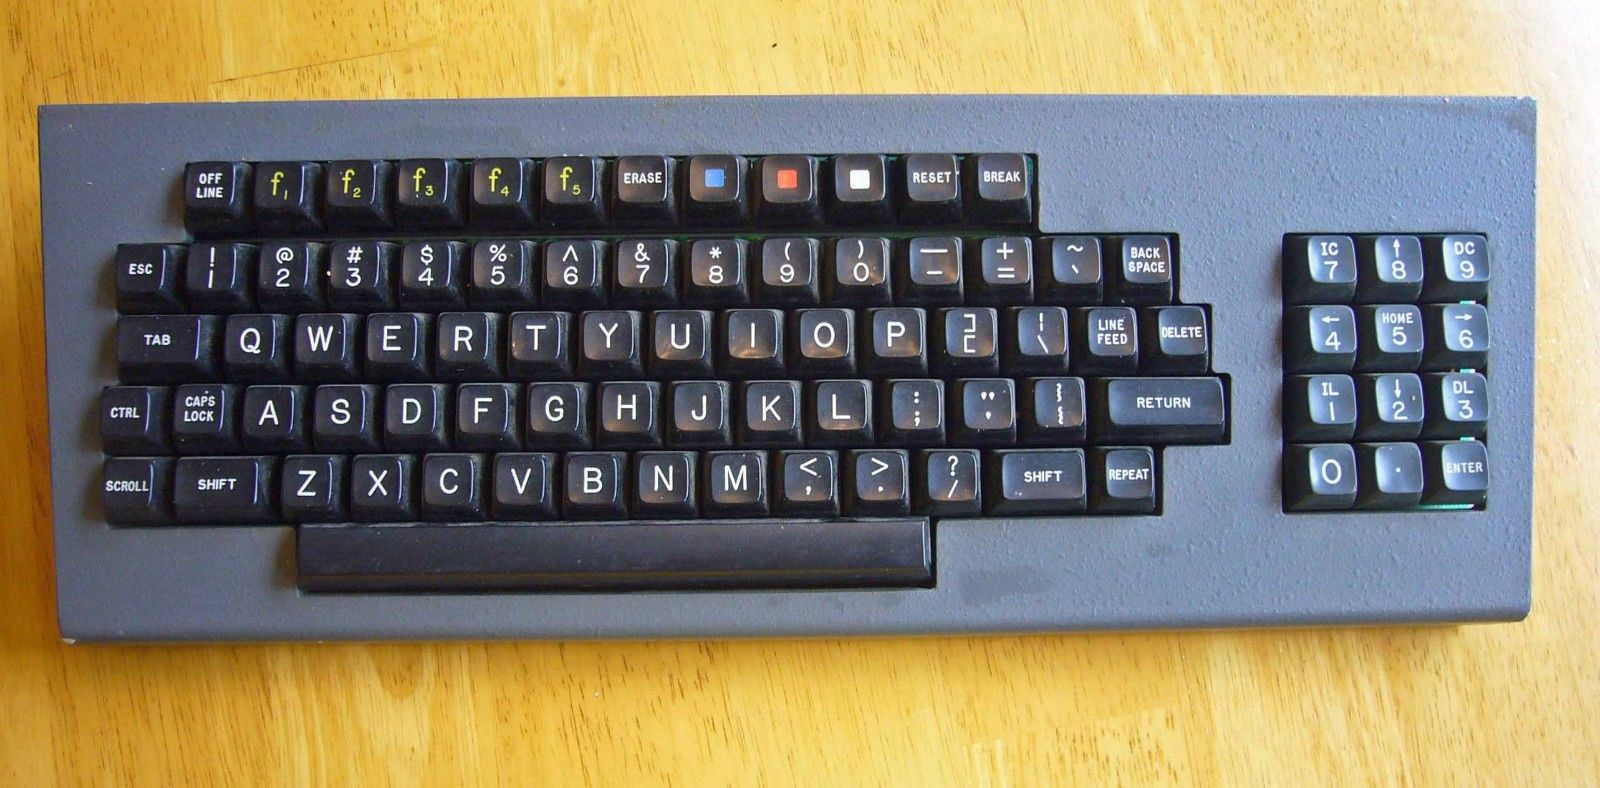 It S A Keyboard From A Zenith Z89 Heath H89 Computer Or A Zenith Z19 Terminal The Z89 Was Just The Terminal With A Z80 Based Mainboard In It Anyway